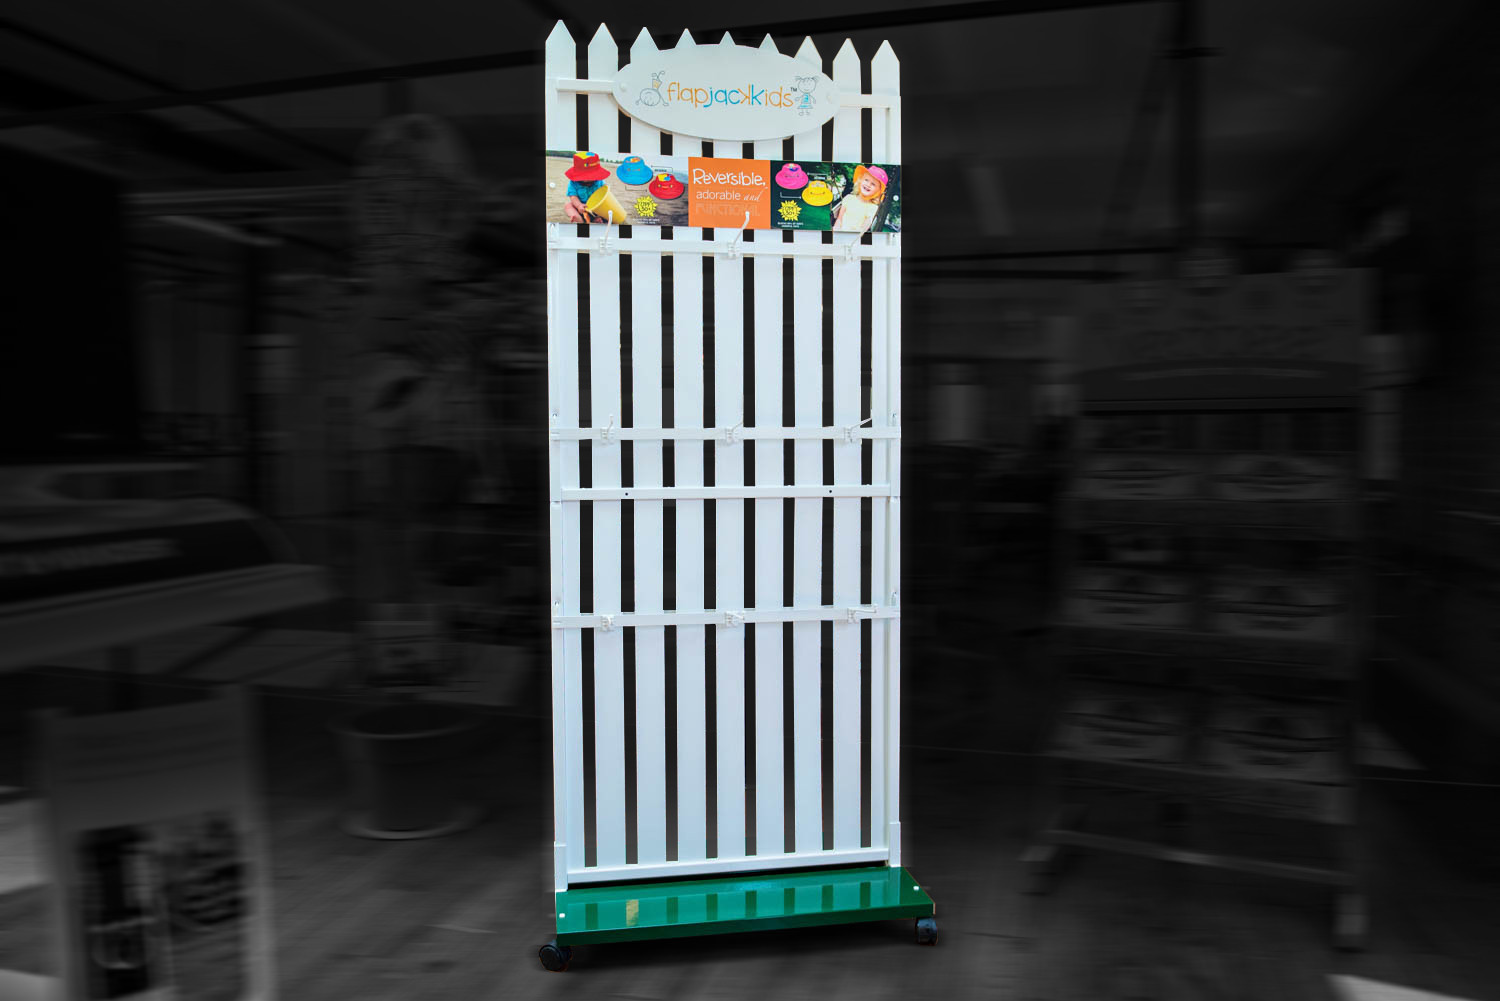 Store Fixtures for Flapjack Kids